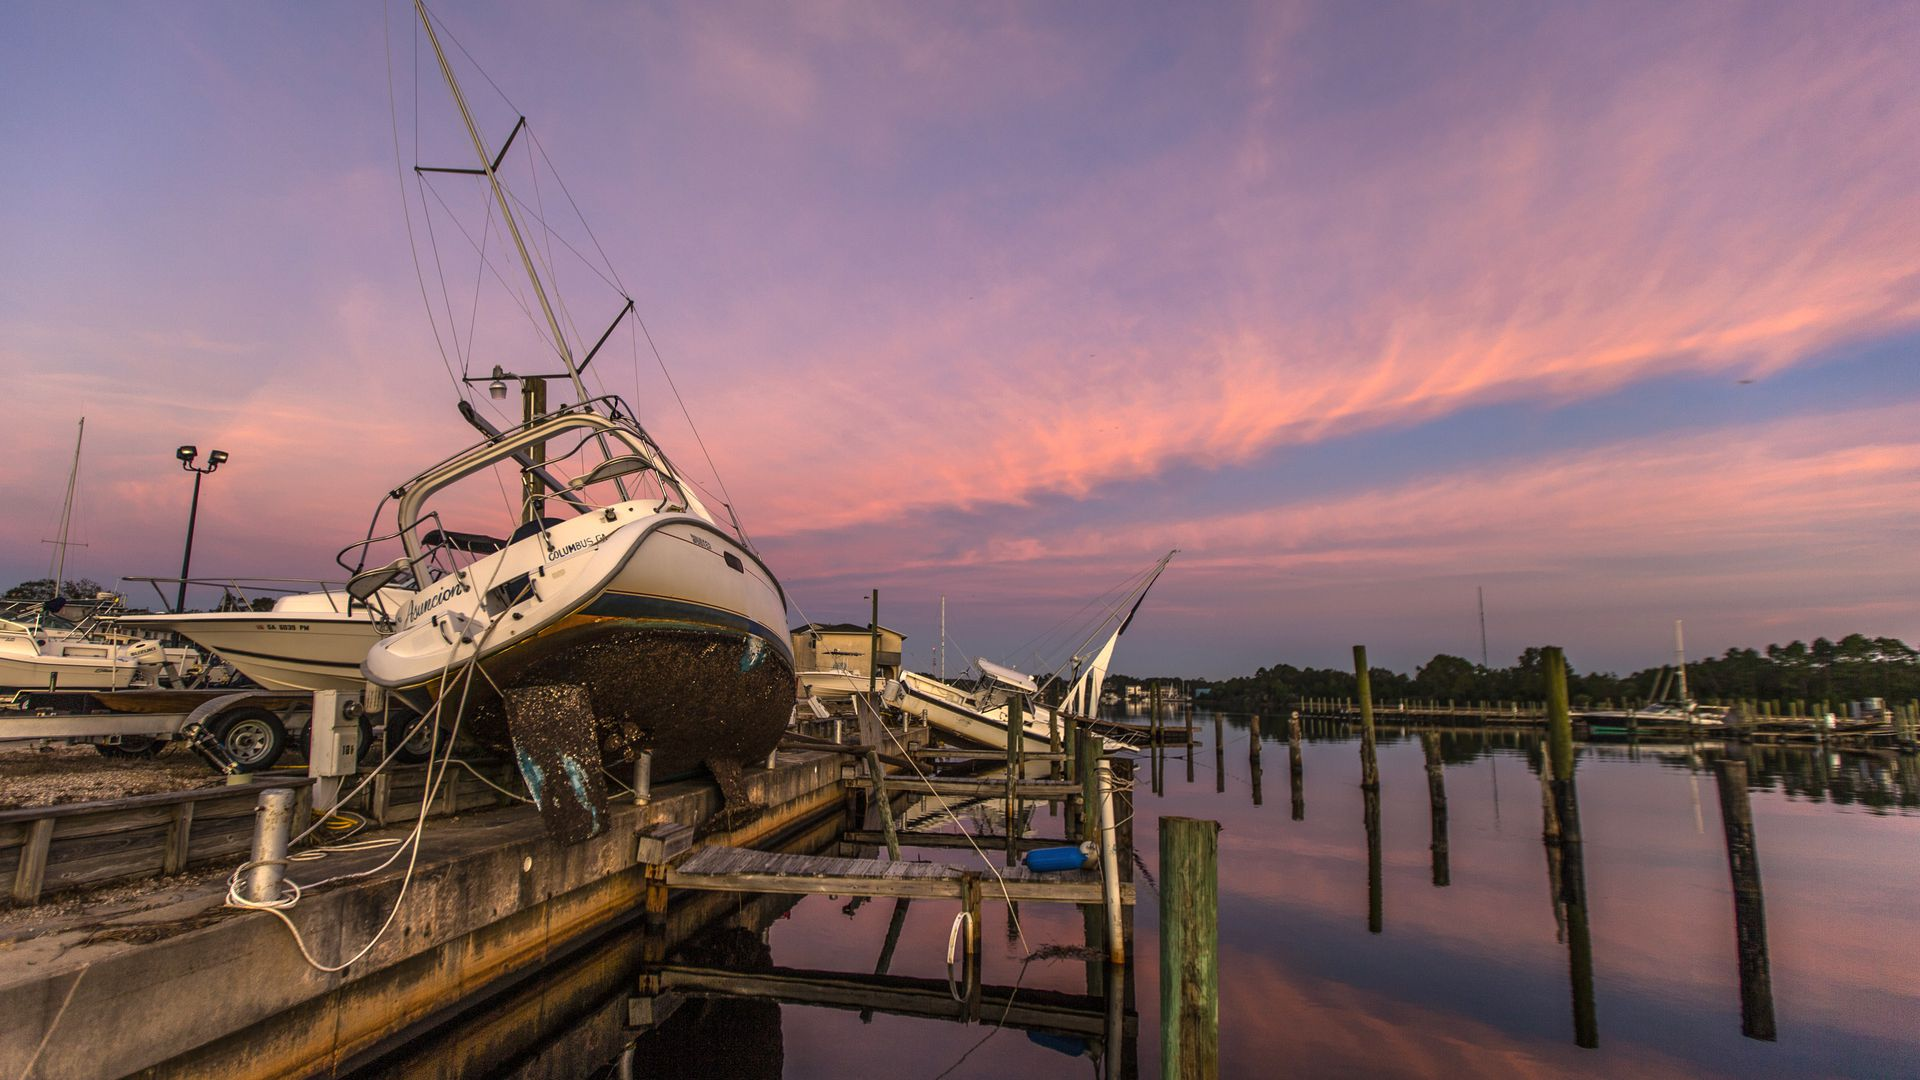 Boats damaged by Hurricane Michael